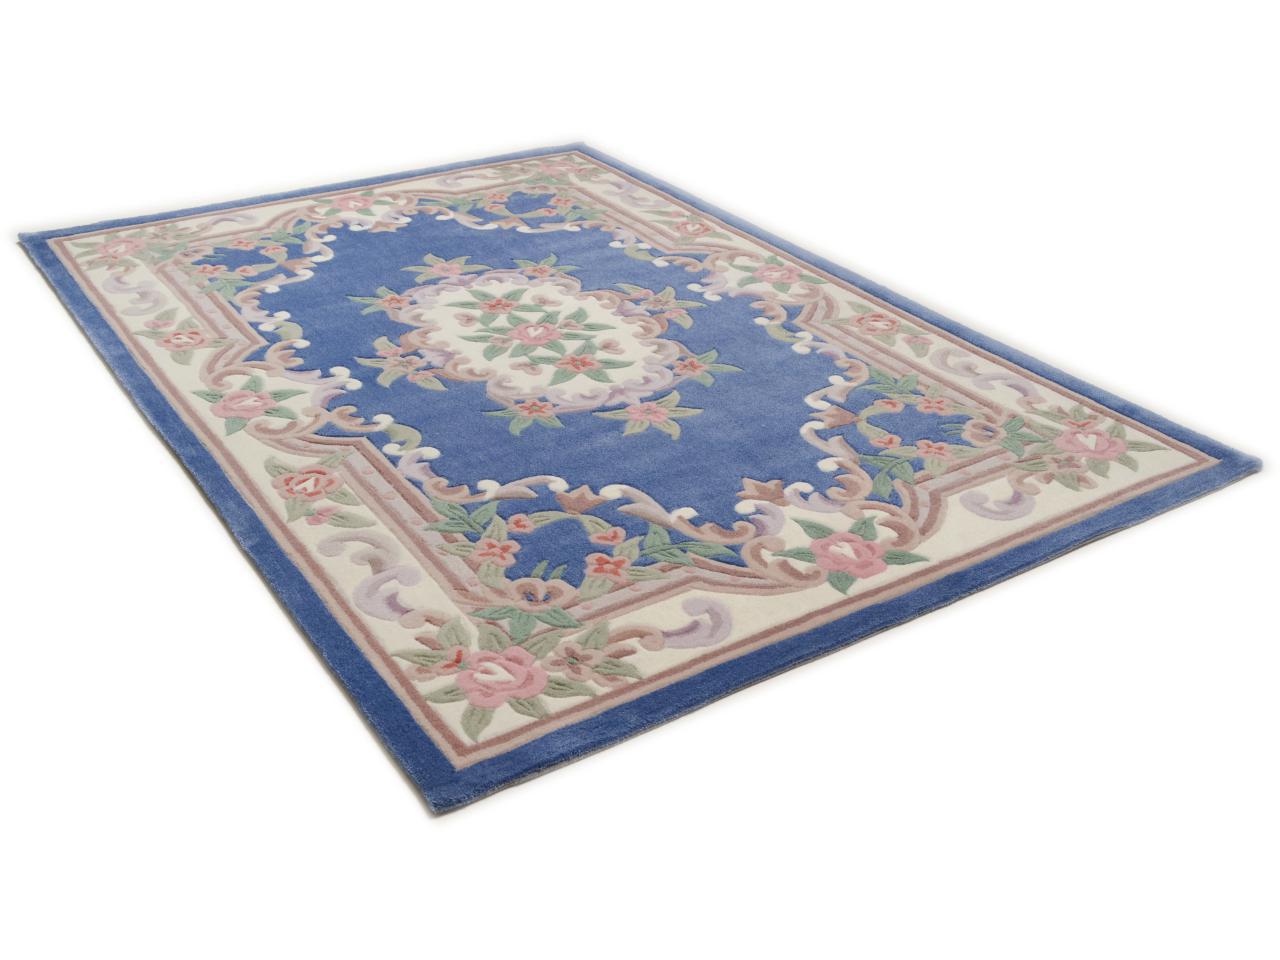 aubusson bleu tapis chinois n 32286 180x120cm. Black Bedroom Furniture Sets. Home Design Ideas